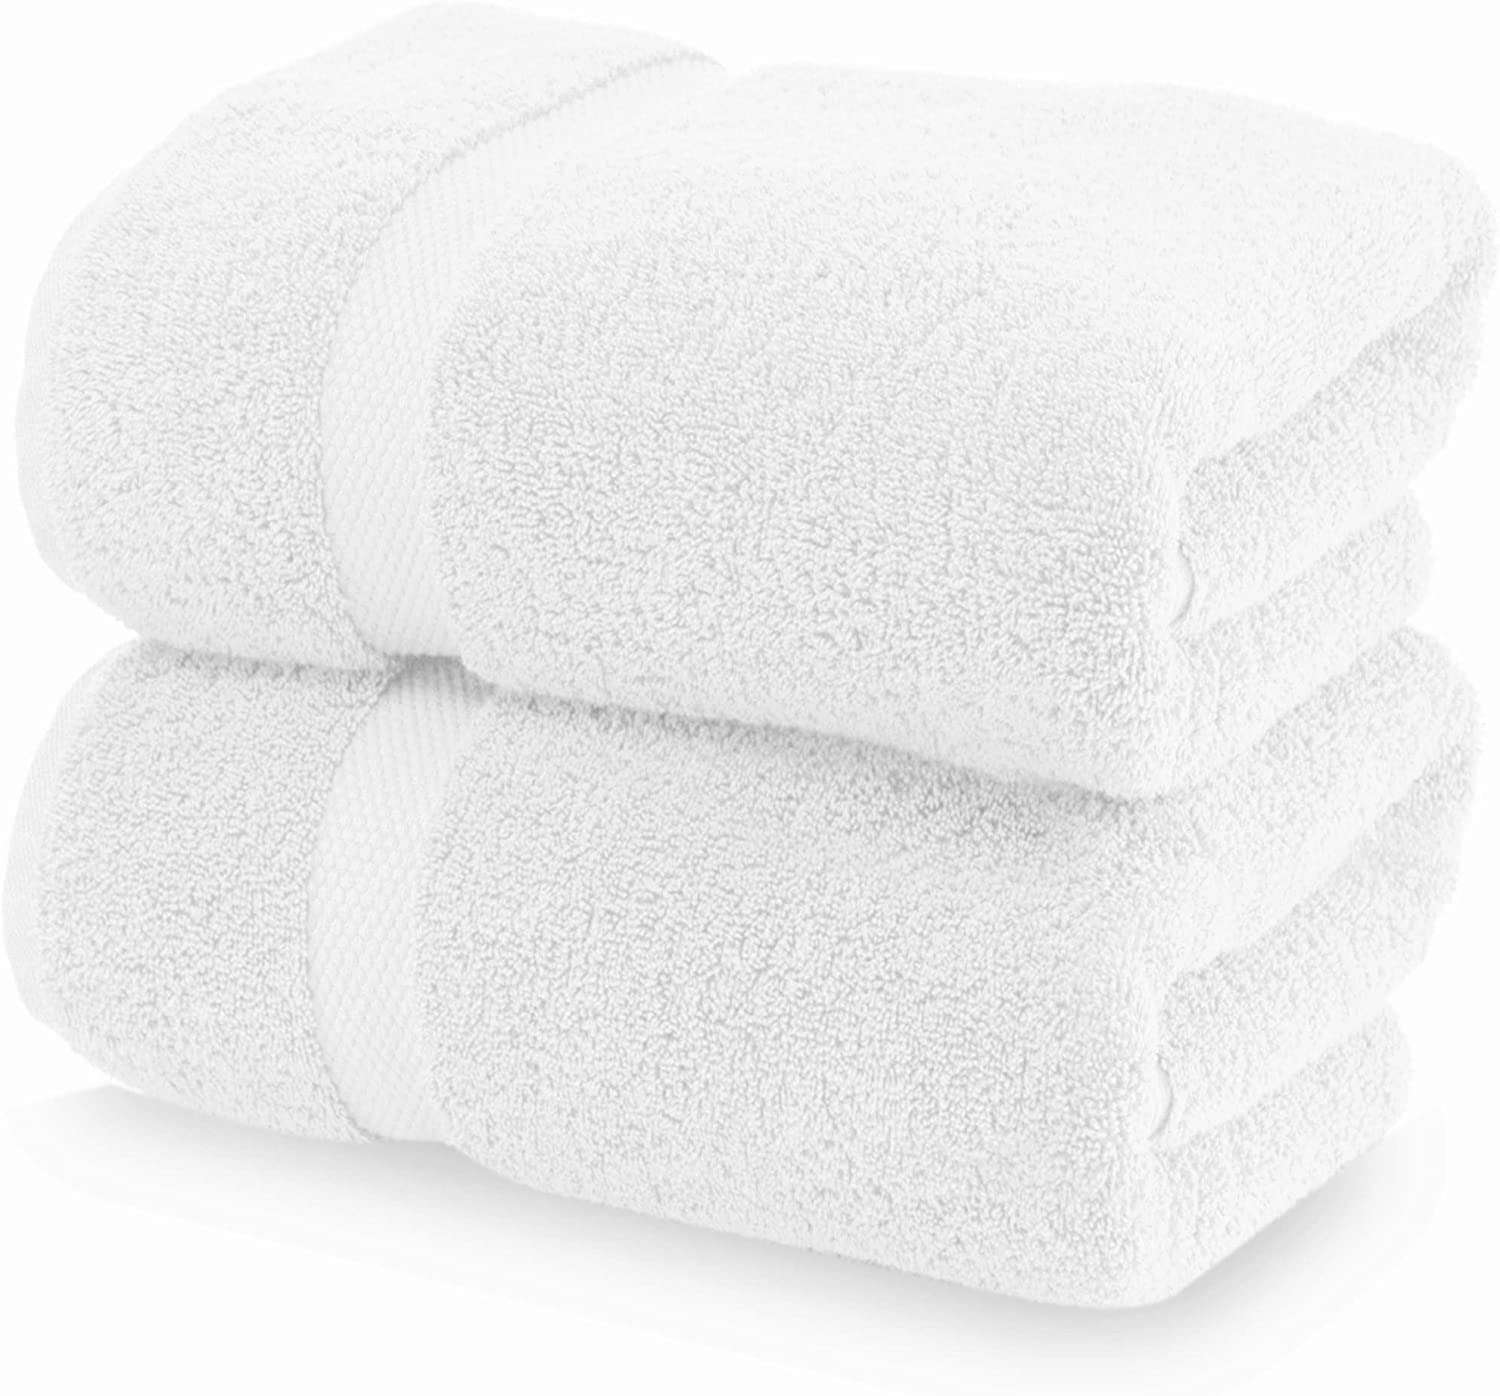 Luxury White Bath Towels Large - Circlet Egyptian Cotton   Highly Absorbent Hotel spa Collection Bathroom Towel   30x56 Inch   Set of 2